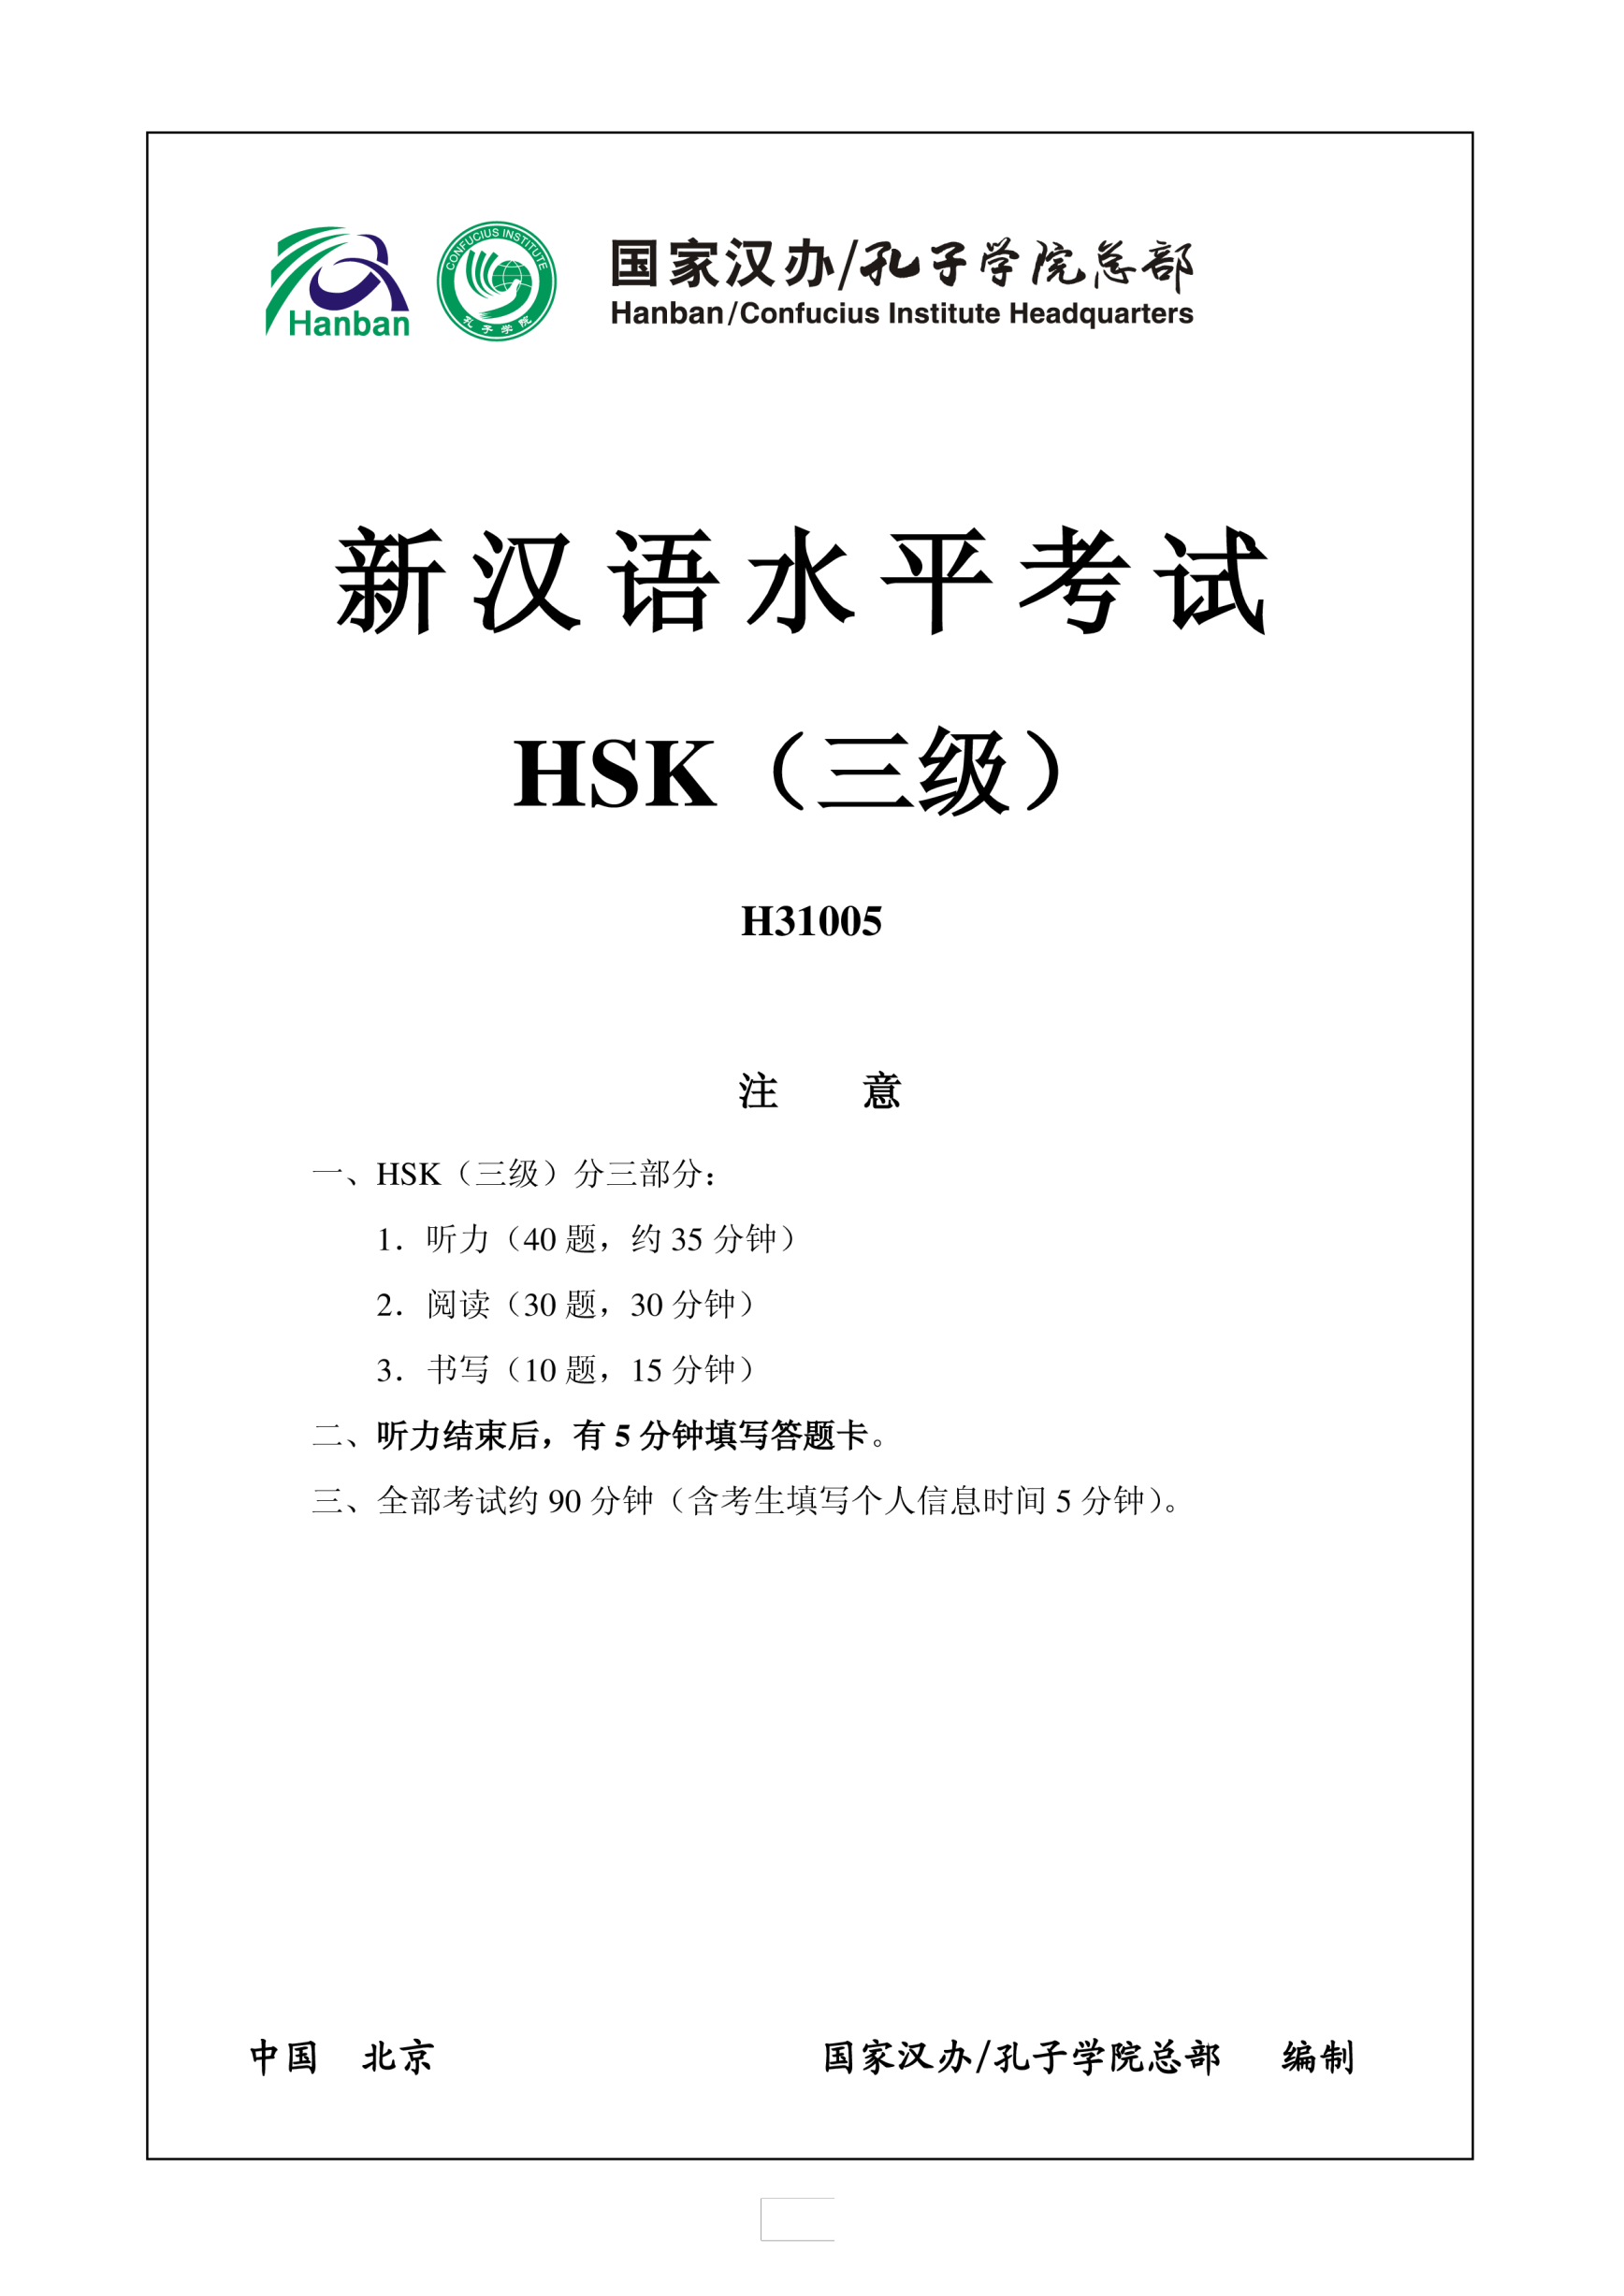 template preview imageHSK3 Chinese Exam including Answers # HSK3 H31005